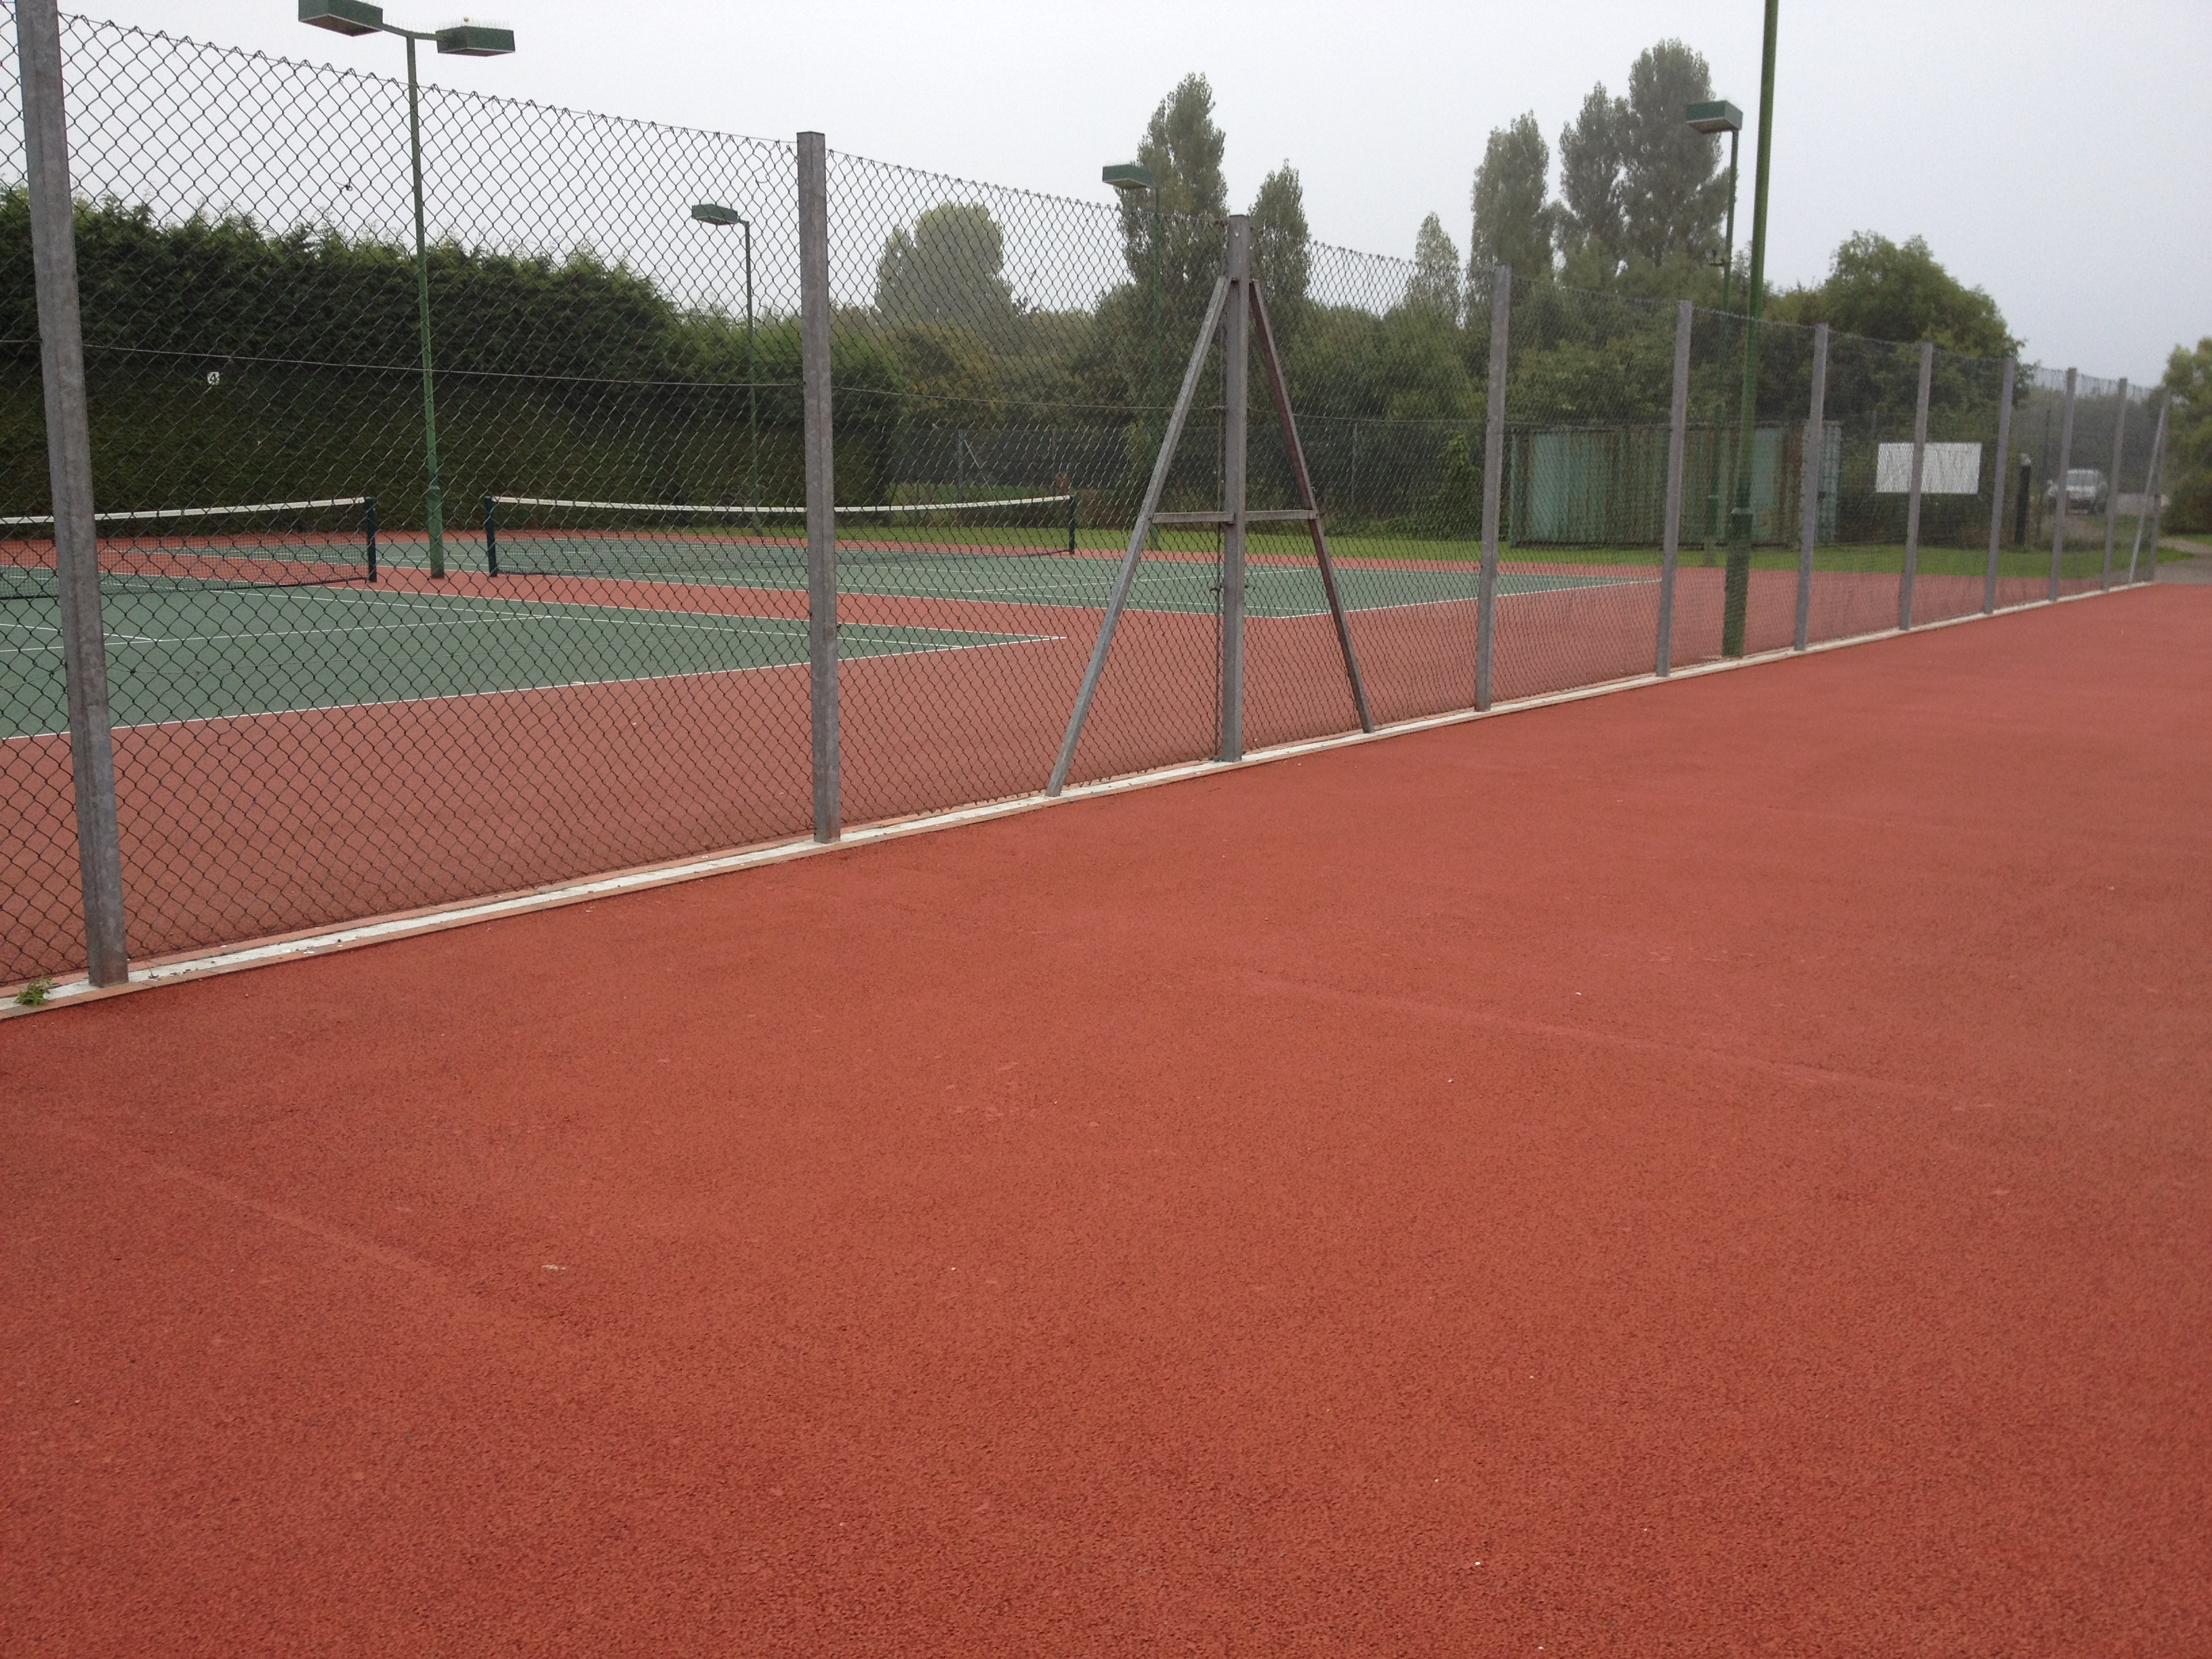 Abingdon Tennis Club given green light at planning for flood mitigation plans